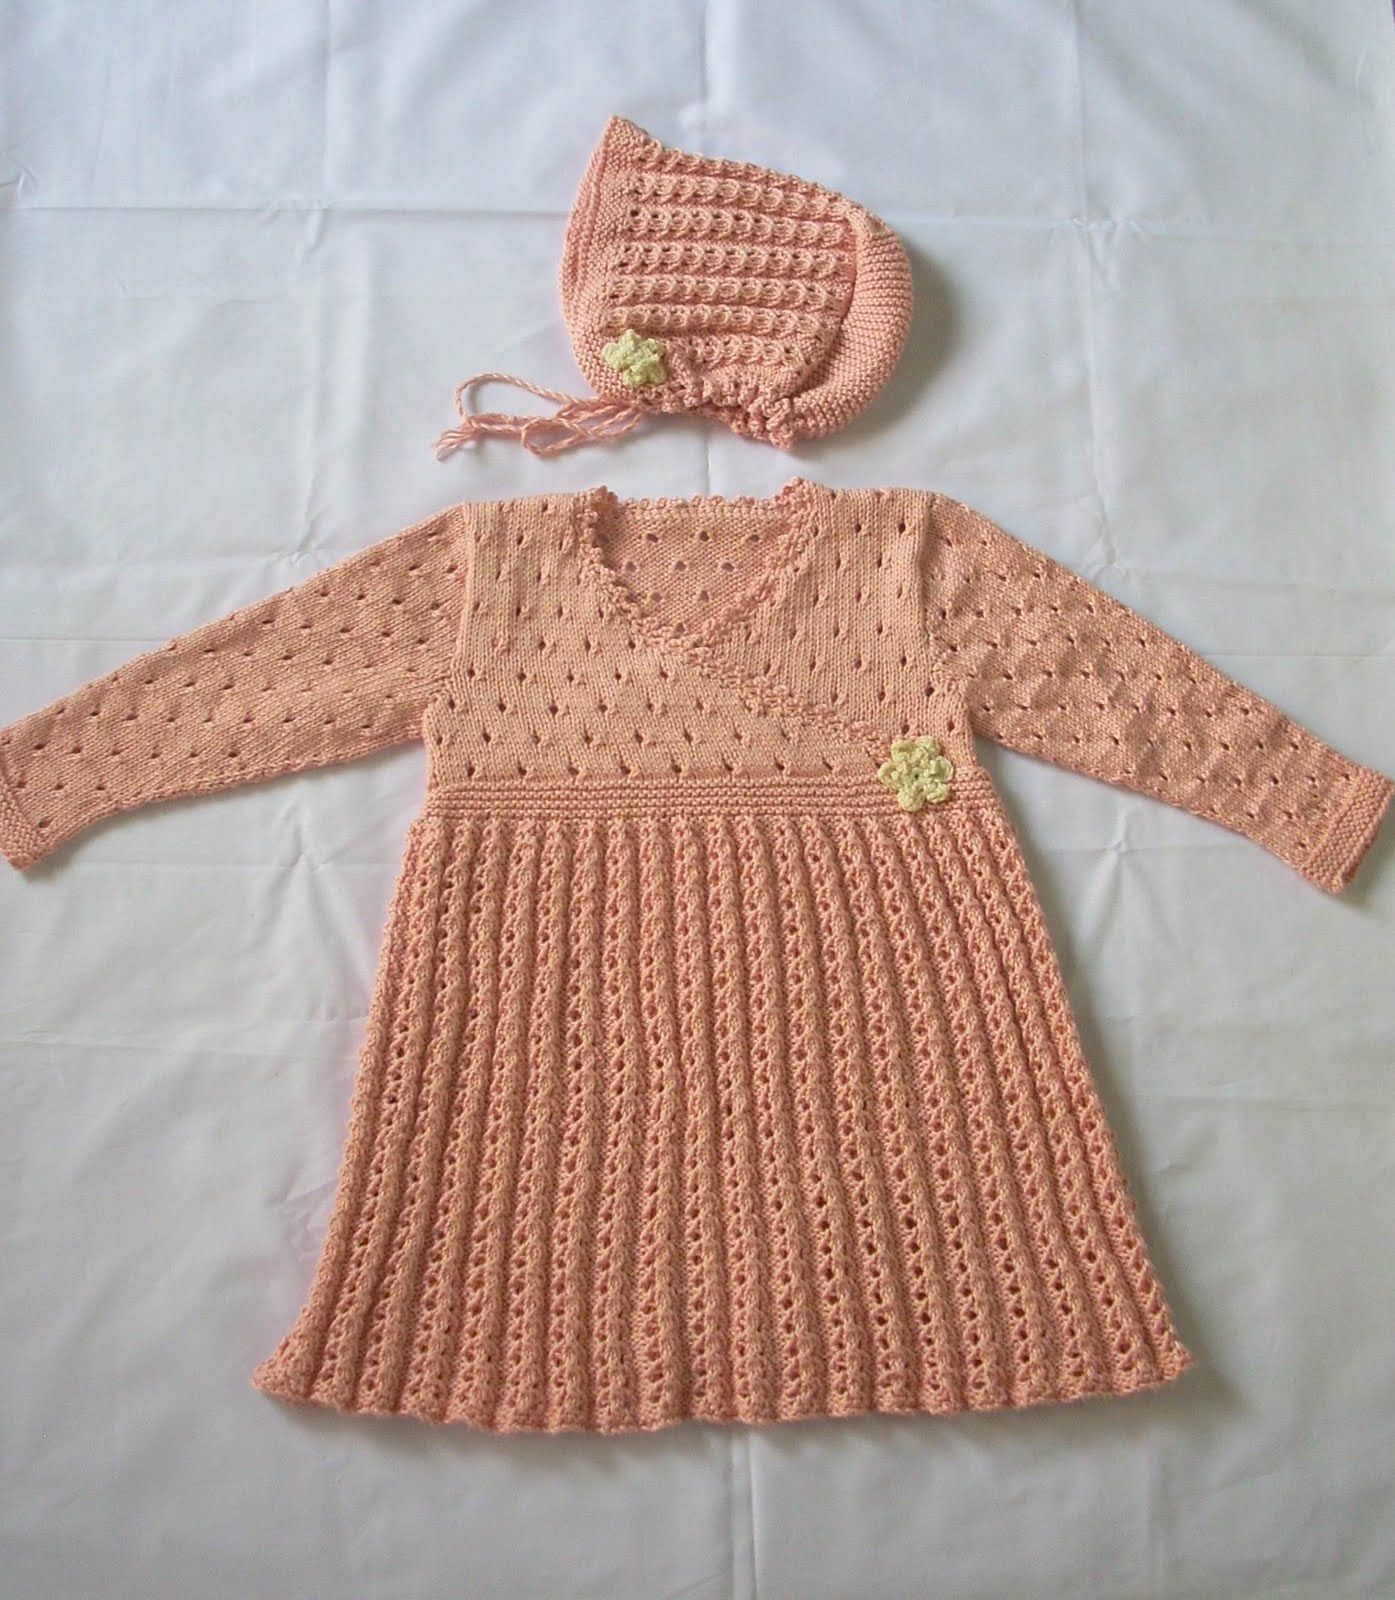 Knitting Patterns Database Apk : Knitted Baby Dress Patterns Apk Mod Game